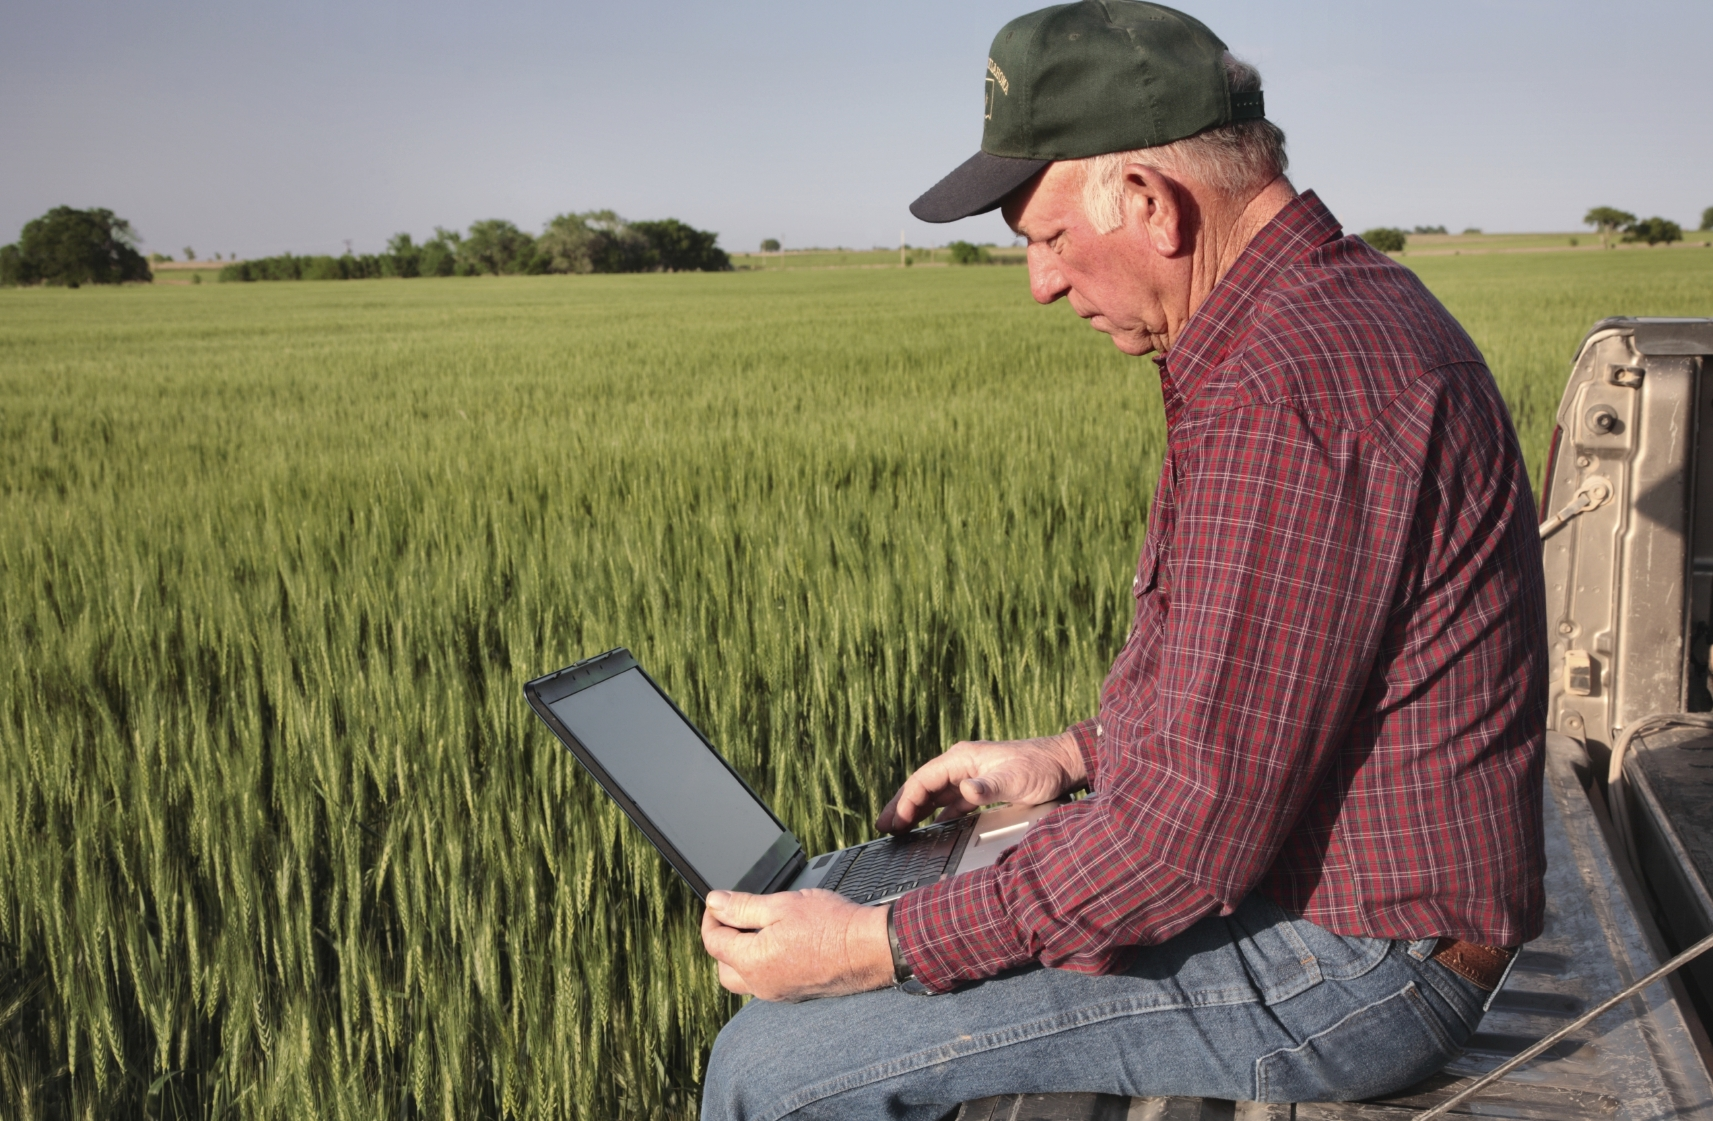 Acquire the agronomics knowledge